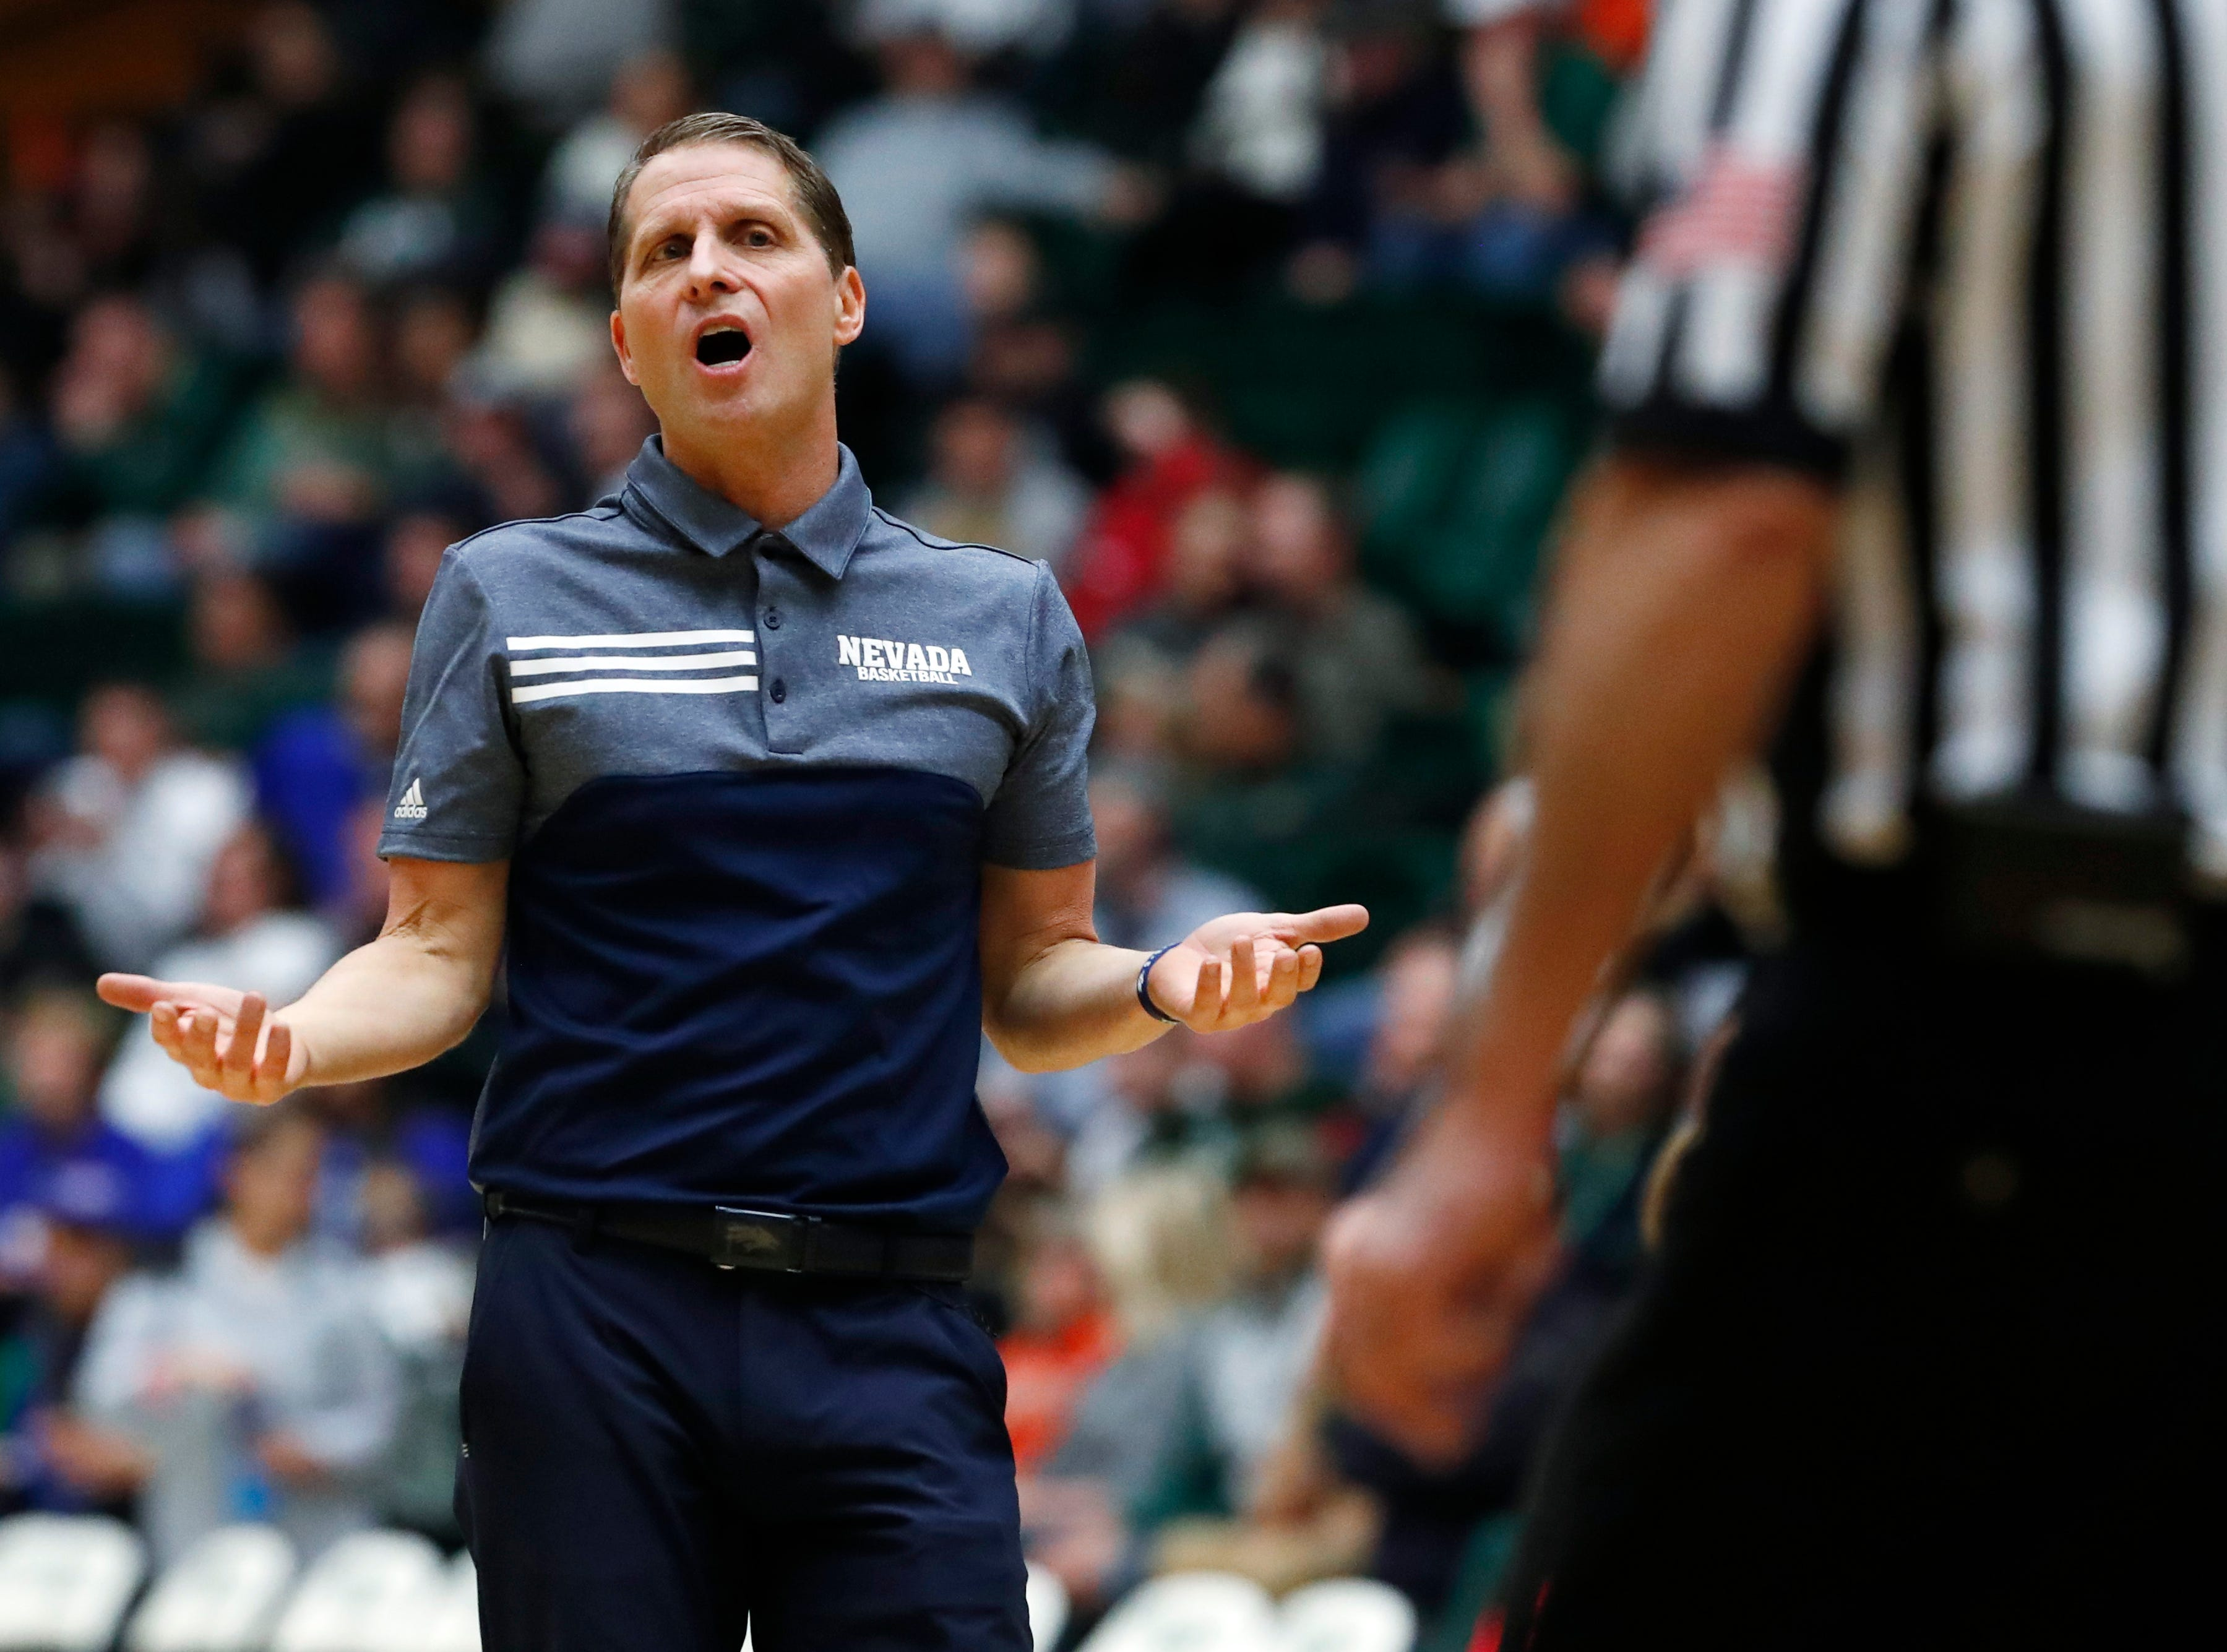 Nevada coach Eric Musselman argues for a call with a referee during the second half of the team's NCAA college basketball game against Colorado State on Wednesday, Feb. 6, 2019, in Fort Collins, Colo. Nevada won 98-82. (AP Photo/David Zalubowski)